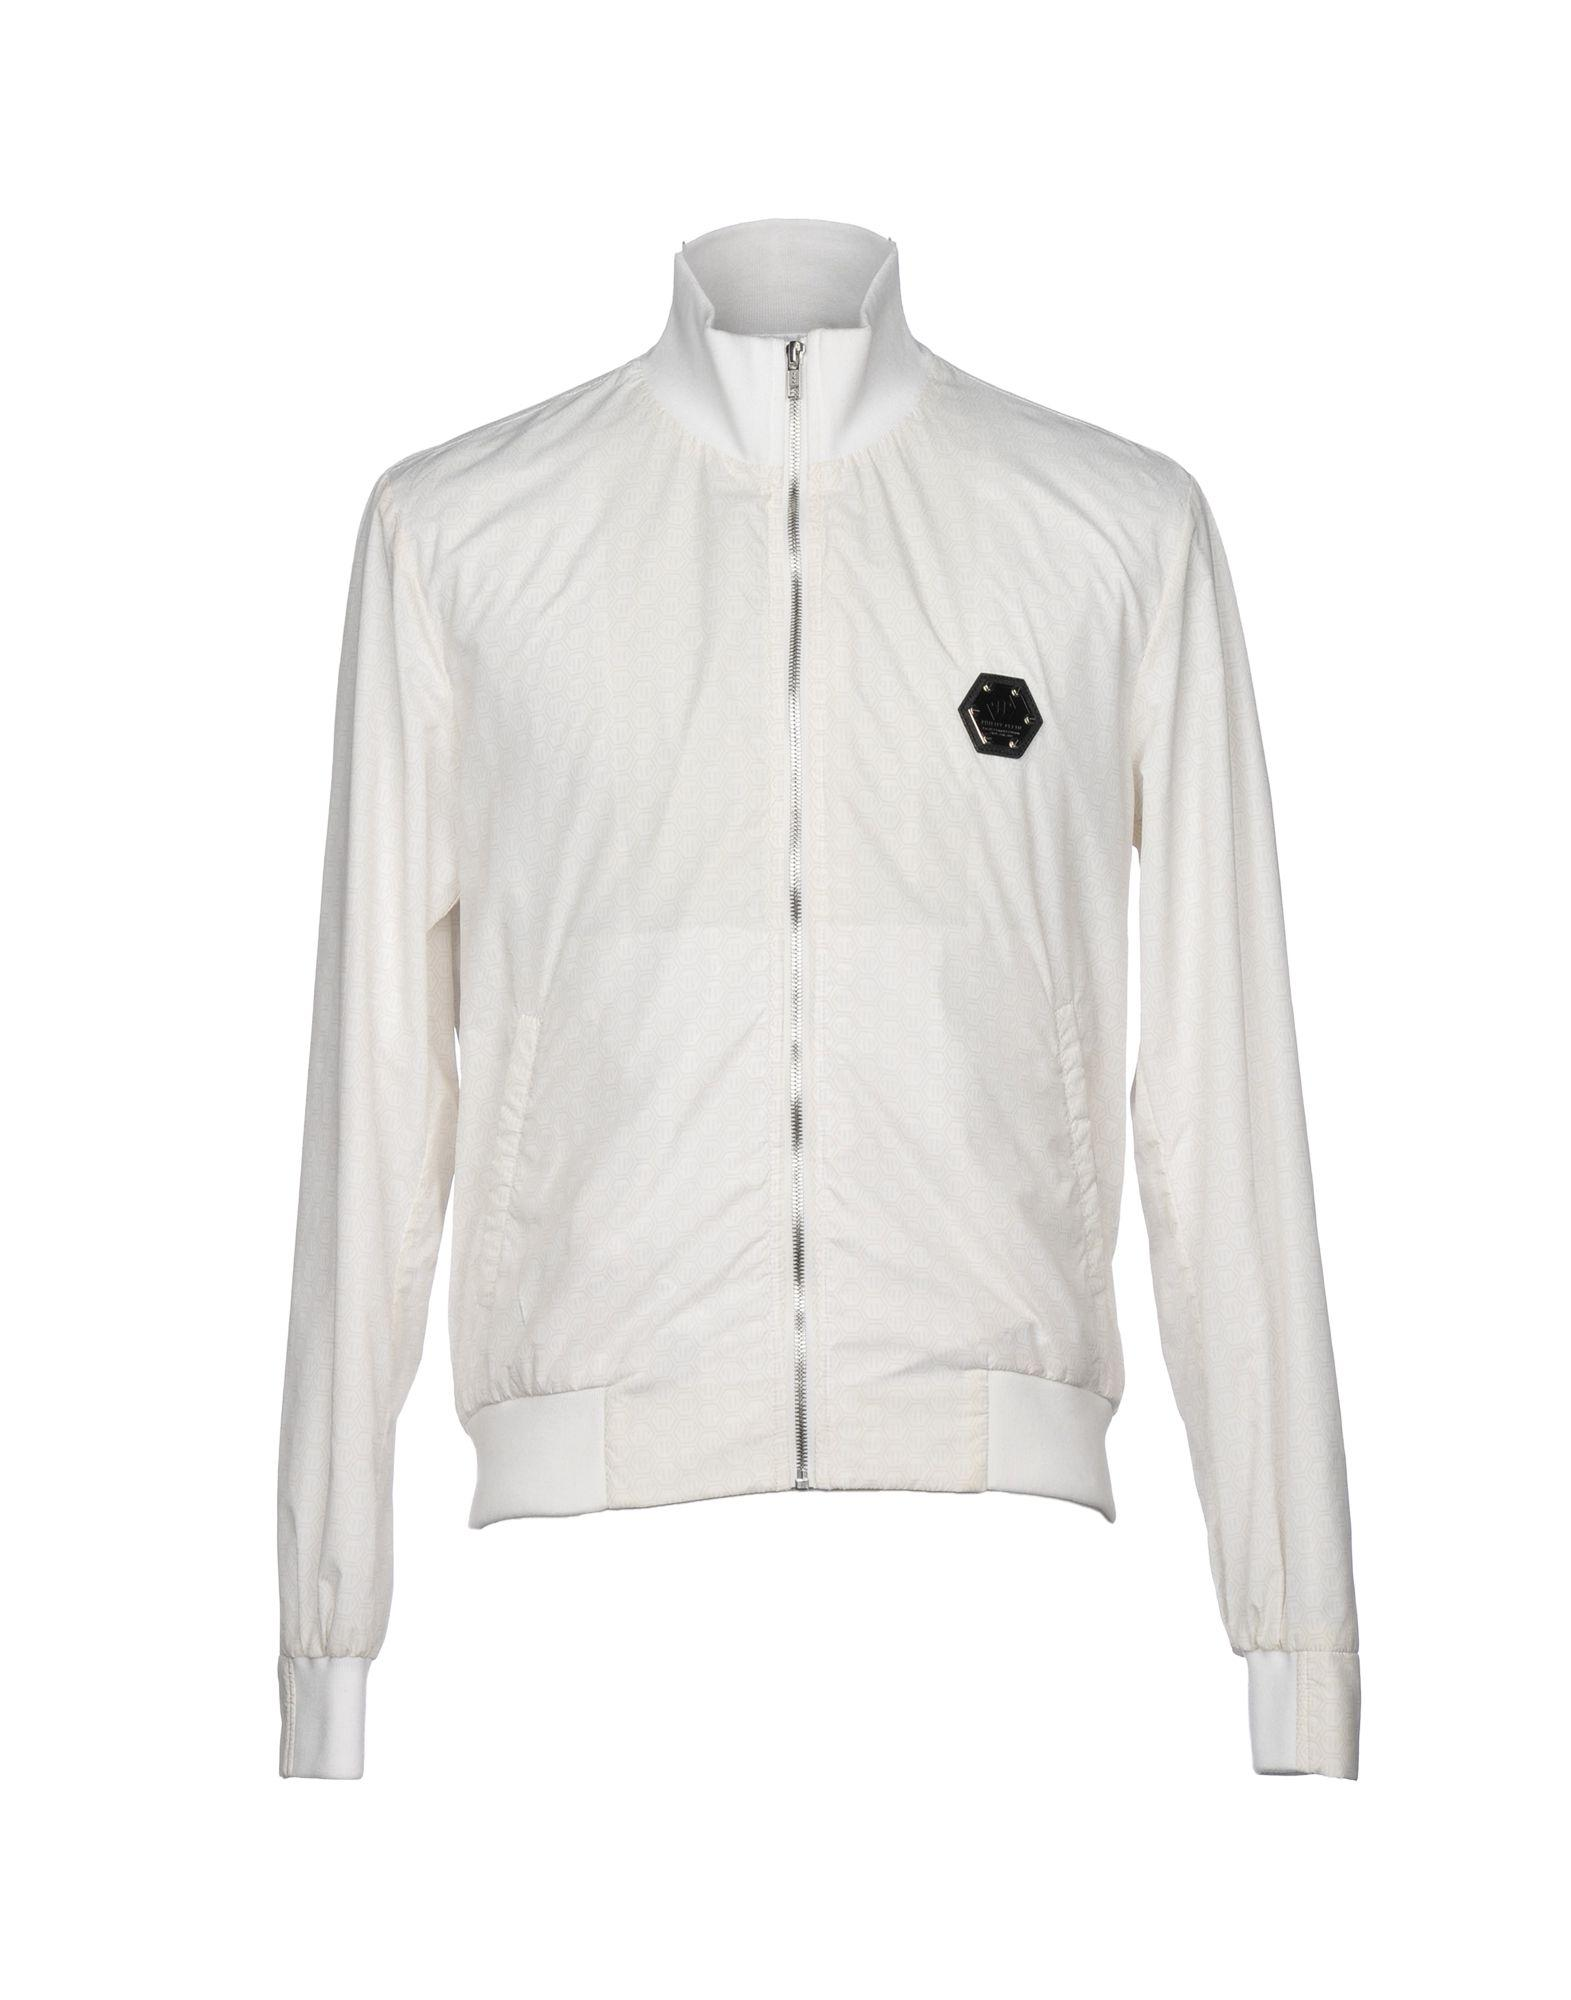 Philipp Plein Jackets In Ivory